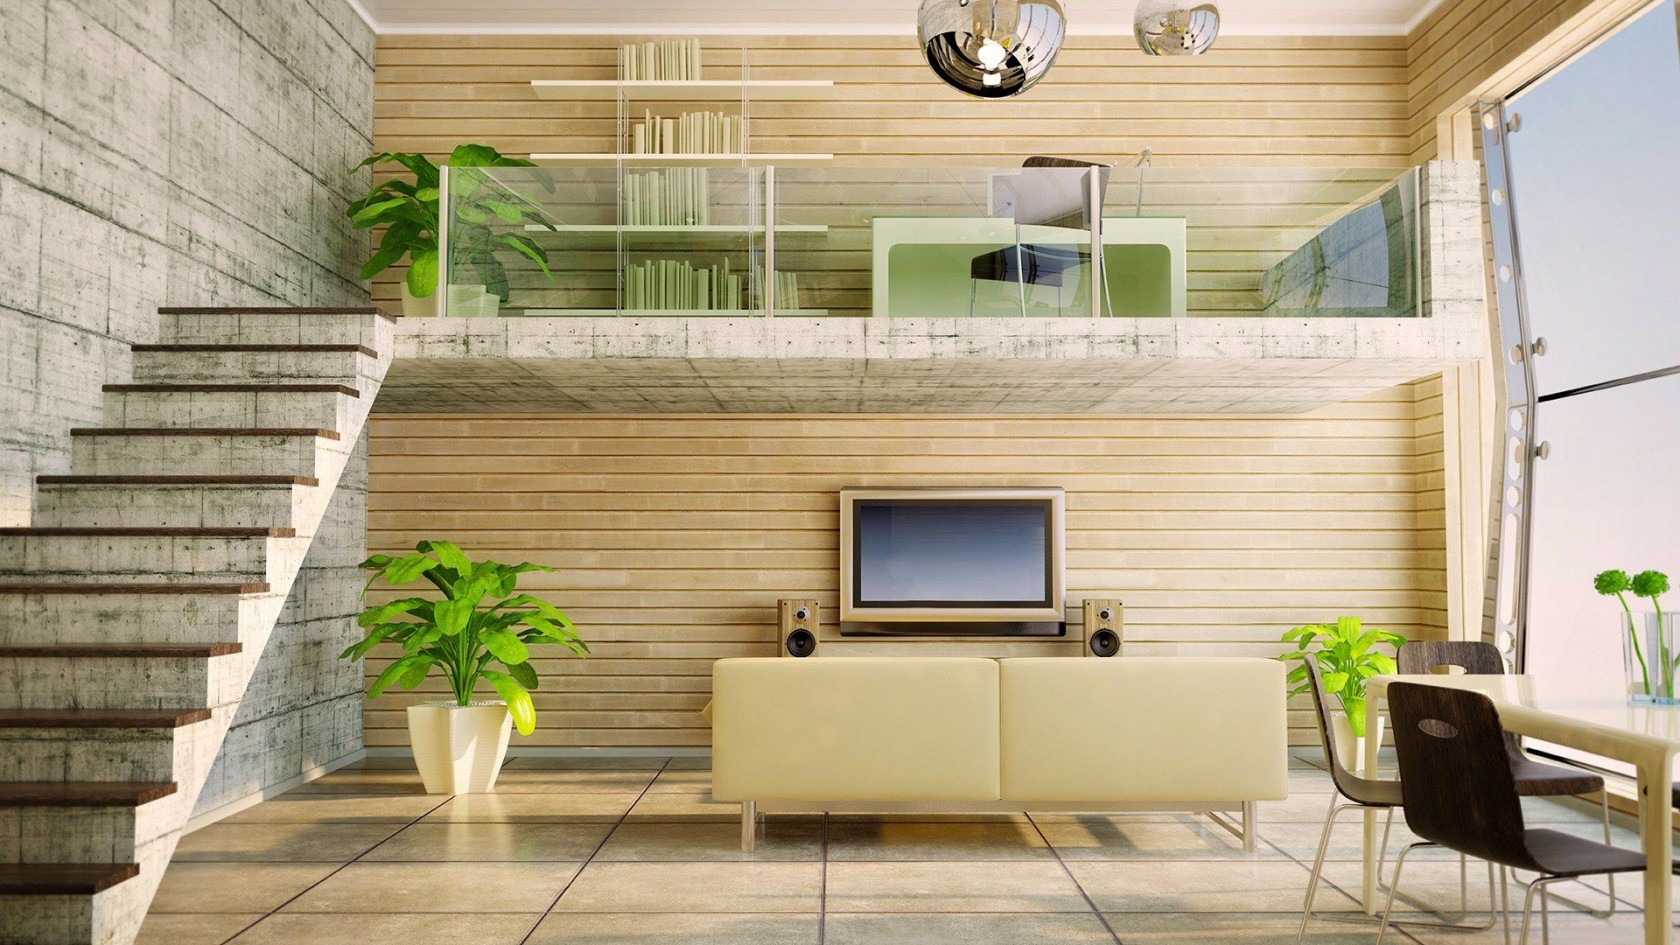 Interior Home Design Wallpaper Download cool HD wallpapers here